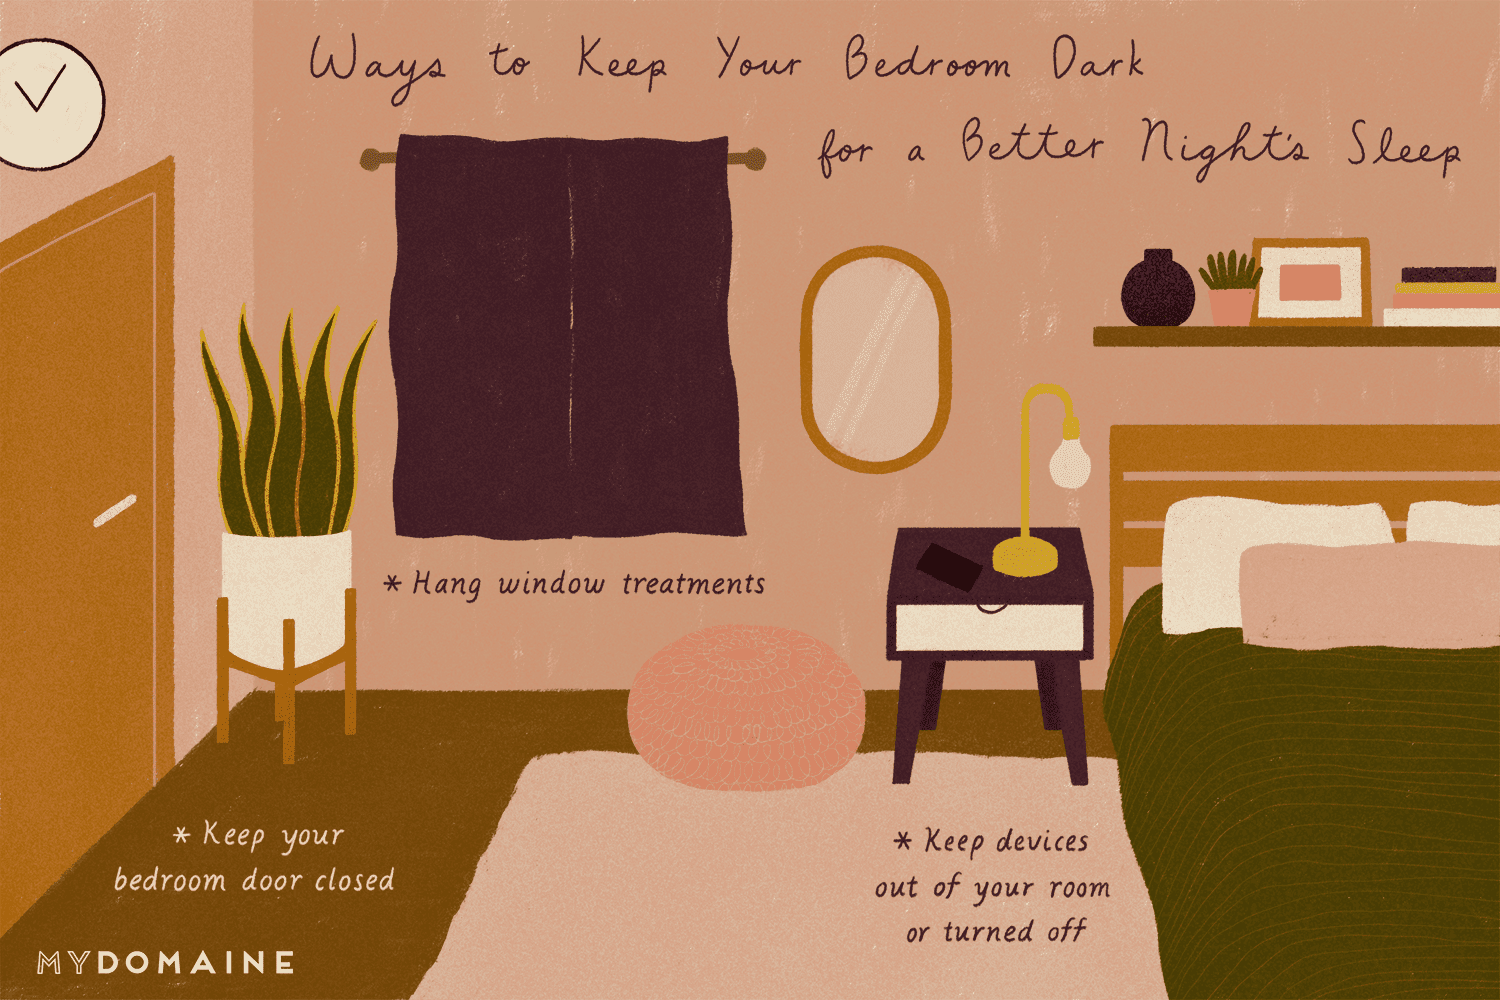 How Dark Should Your Room Really Be for Sleep?